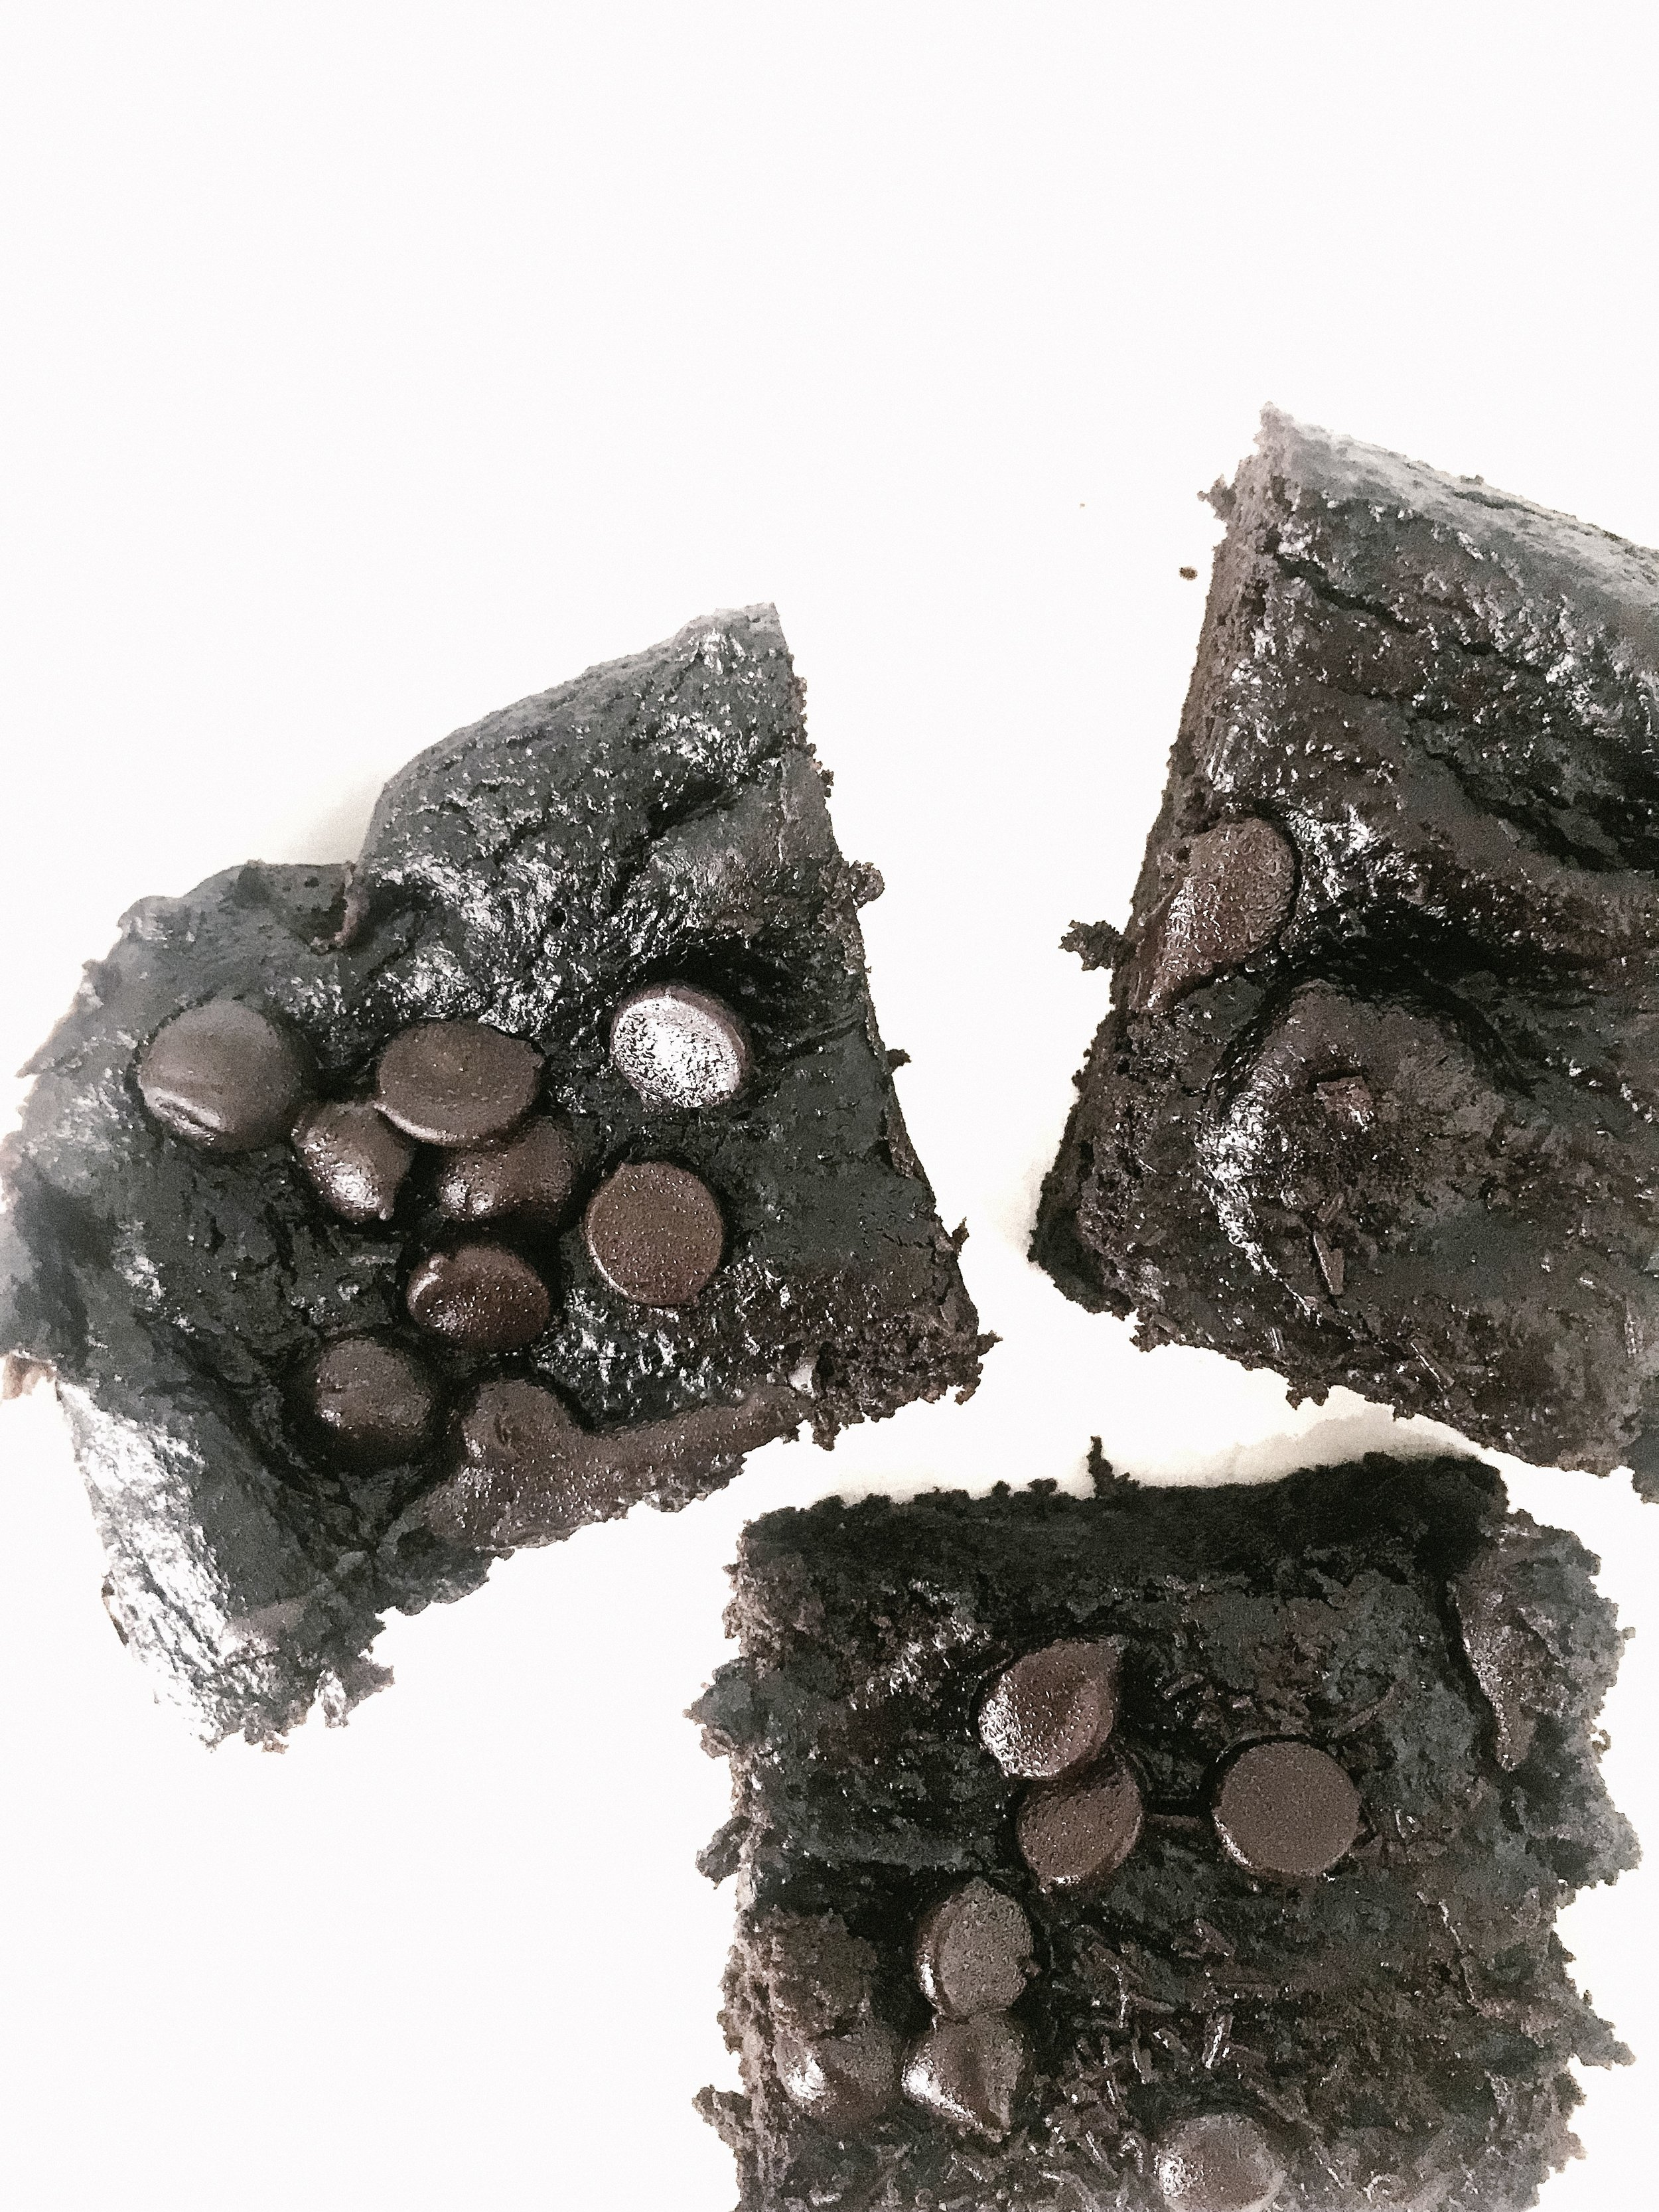 Cannabis Avocado Brownies (Paleo, Gluten-Free, Dairy-Free) - The perfect clean treat for you and your autoimmune disease.